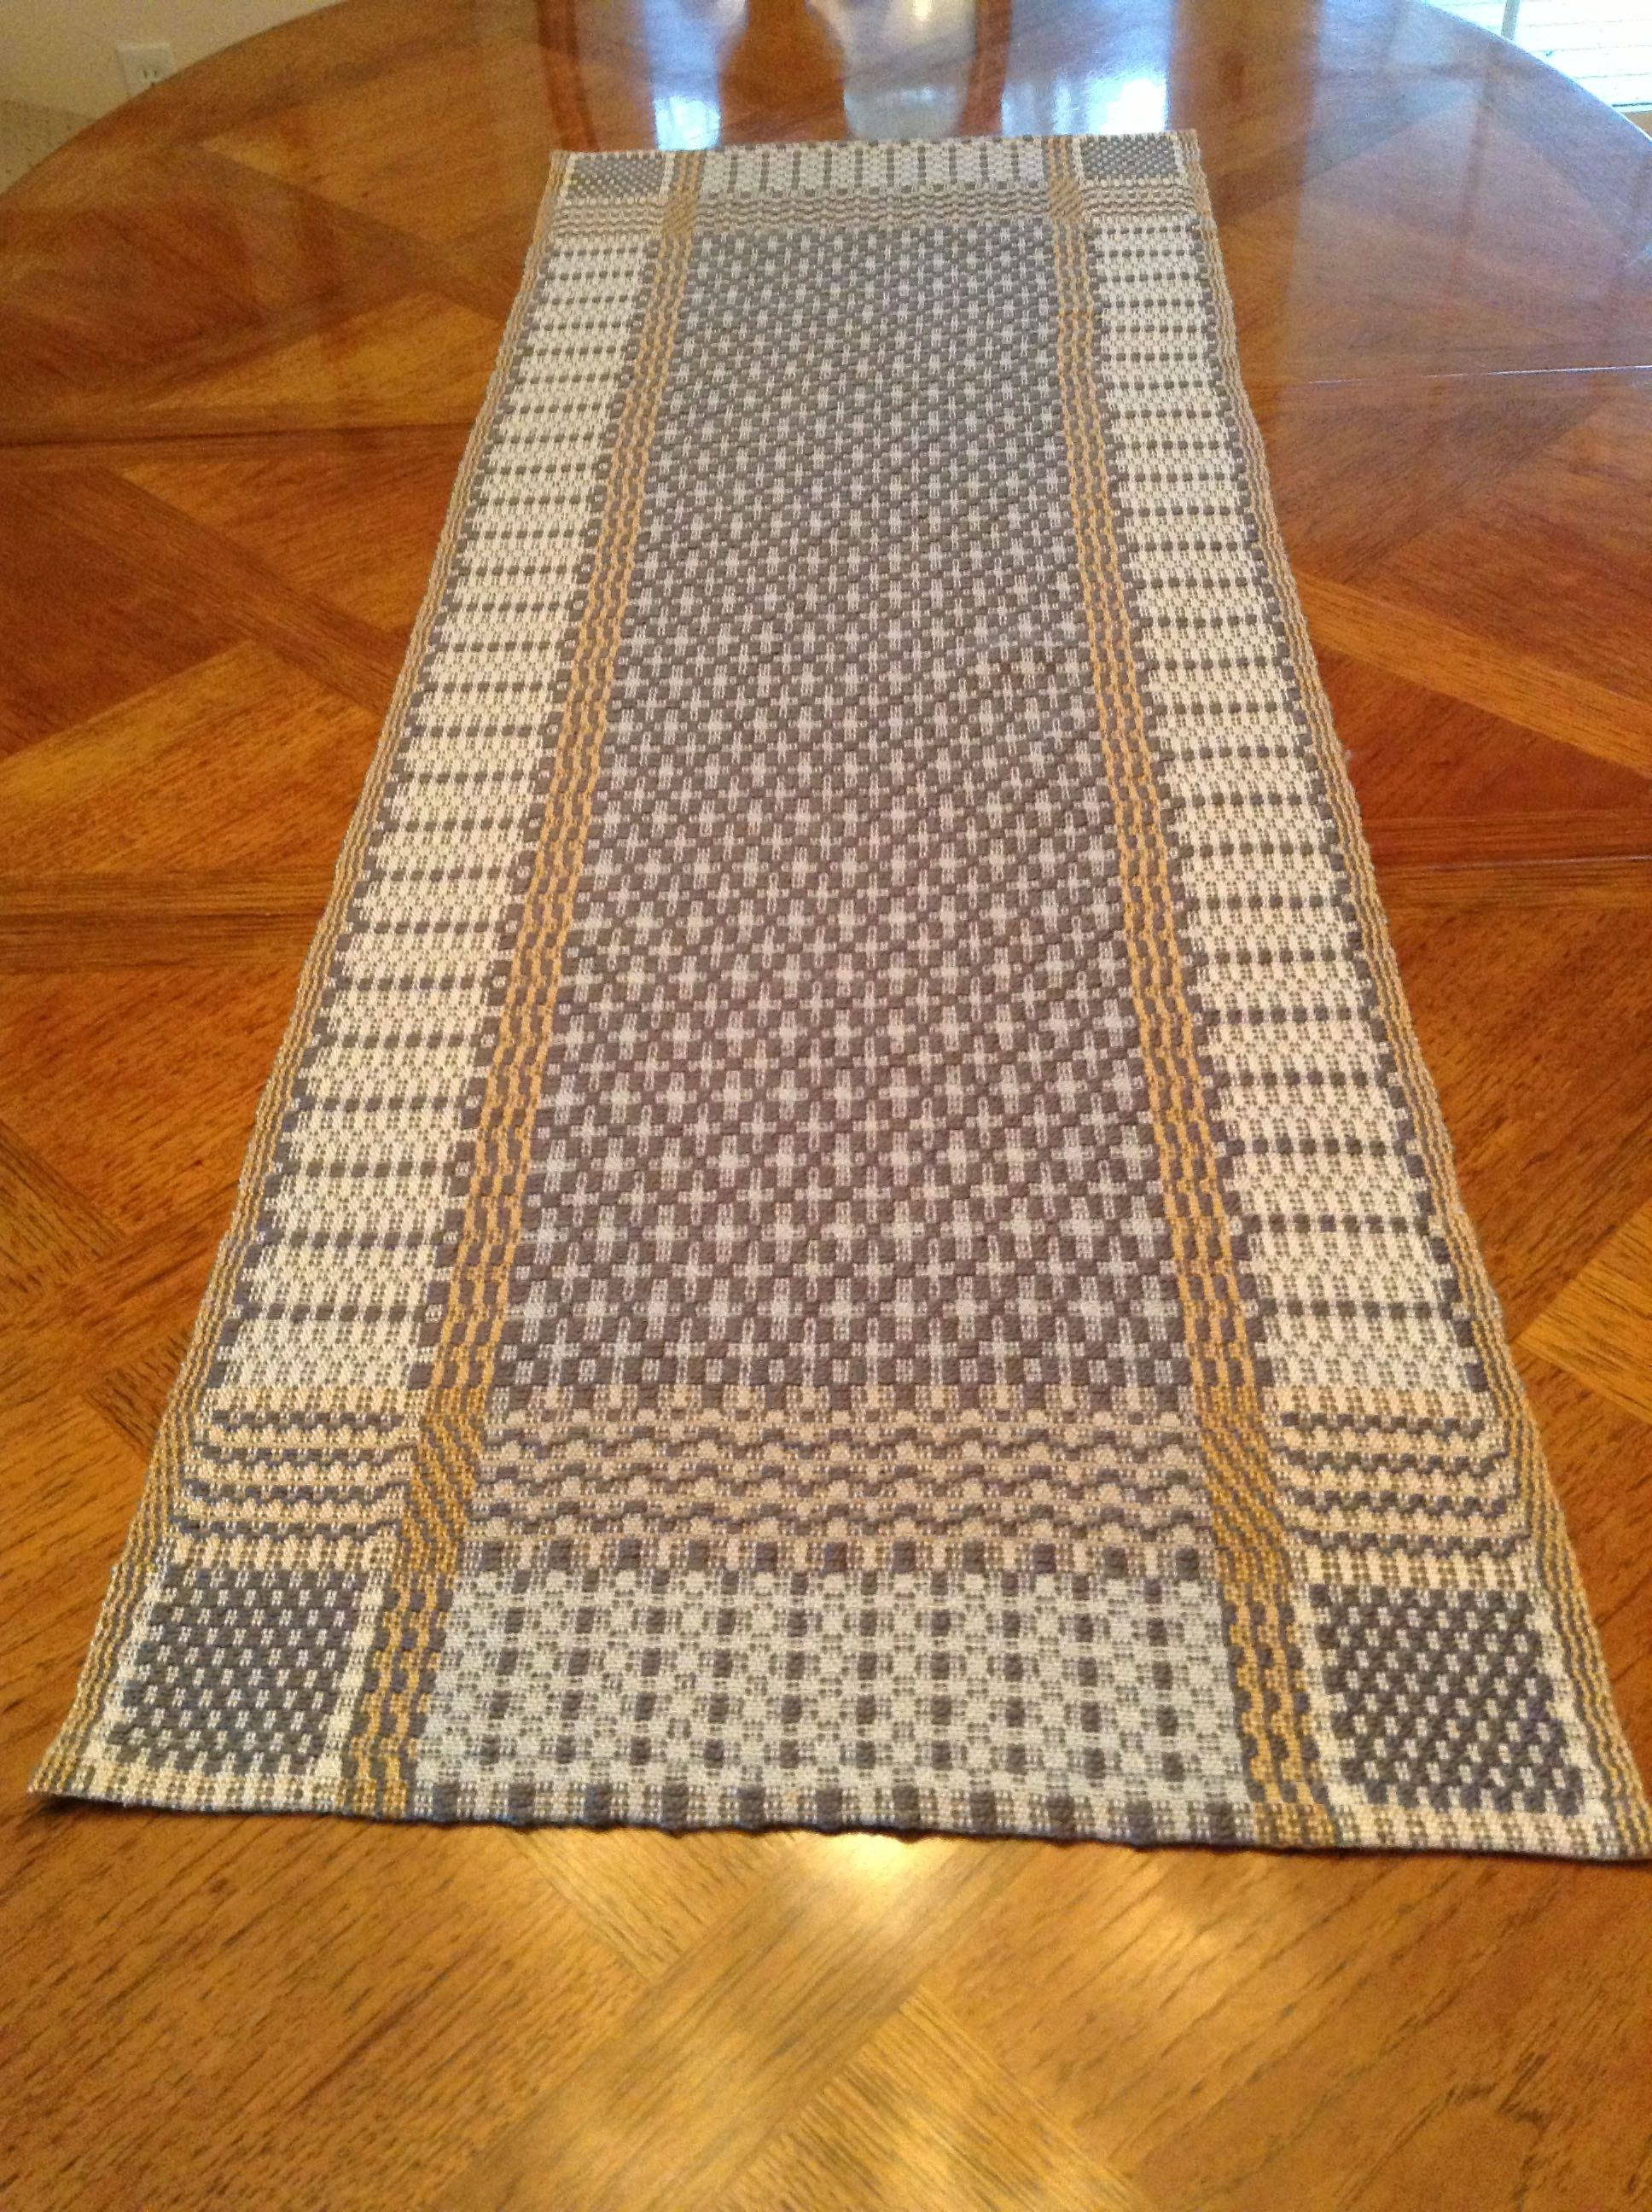 What A Difference The Color Makes Lucy D Of Hendersonville Nc Wove Our Thanksgiving Table Runner Http Www Yarnba Willow Weaving Hand Weaving Weaving Rug